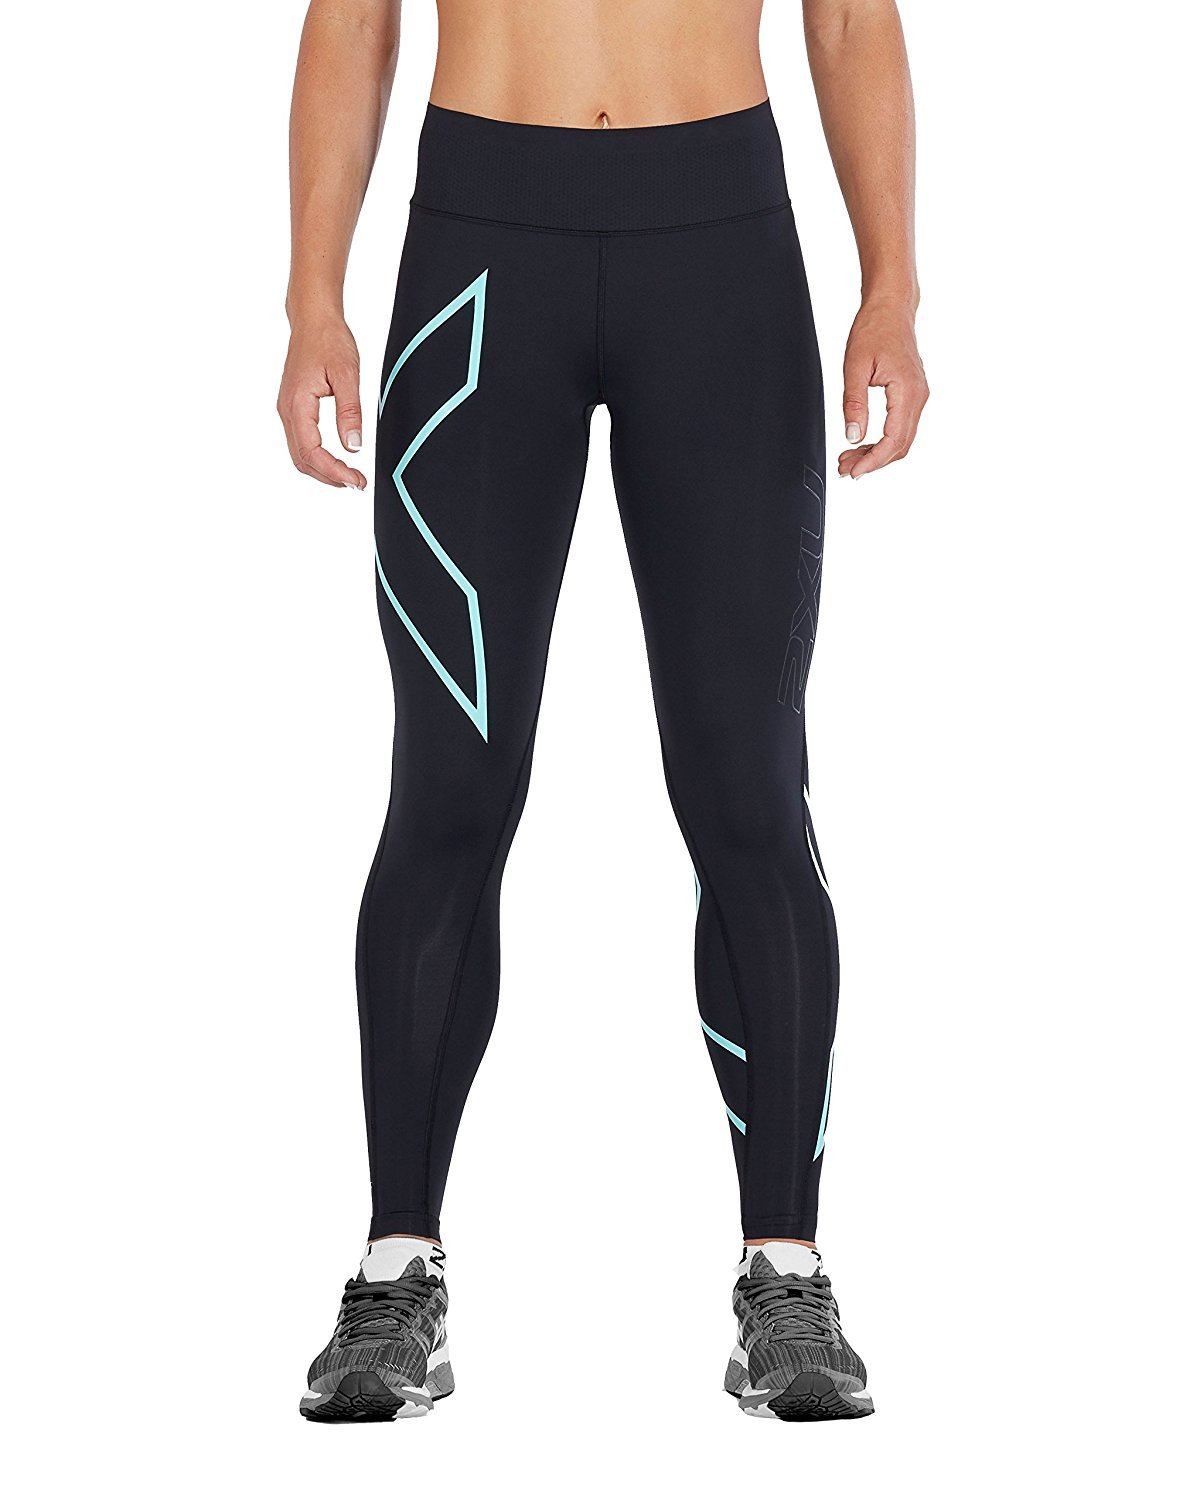 2XU Womens Bonded Mid-Rise Compression Tights